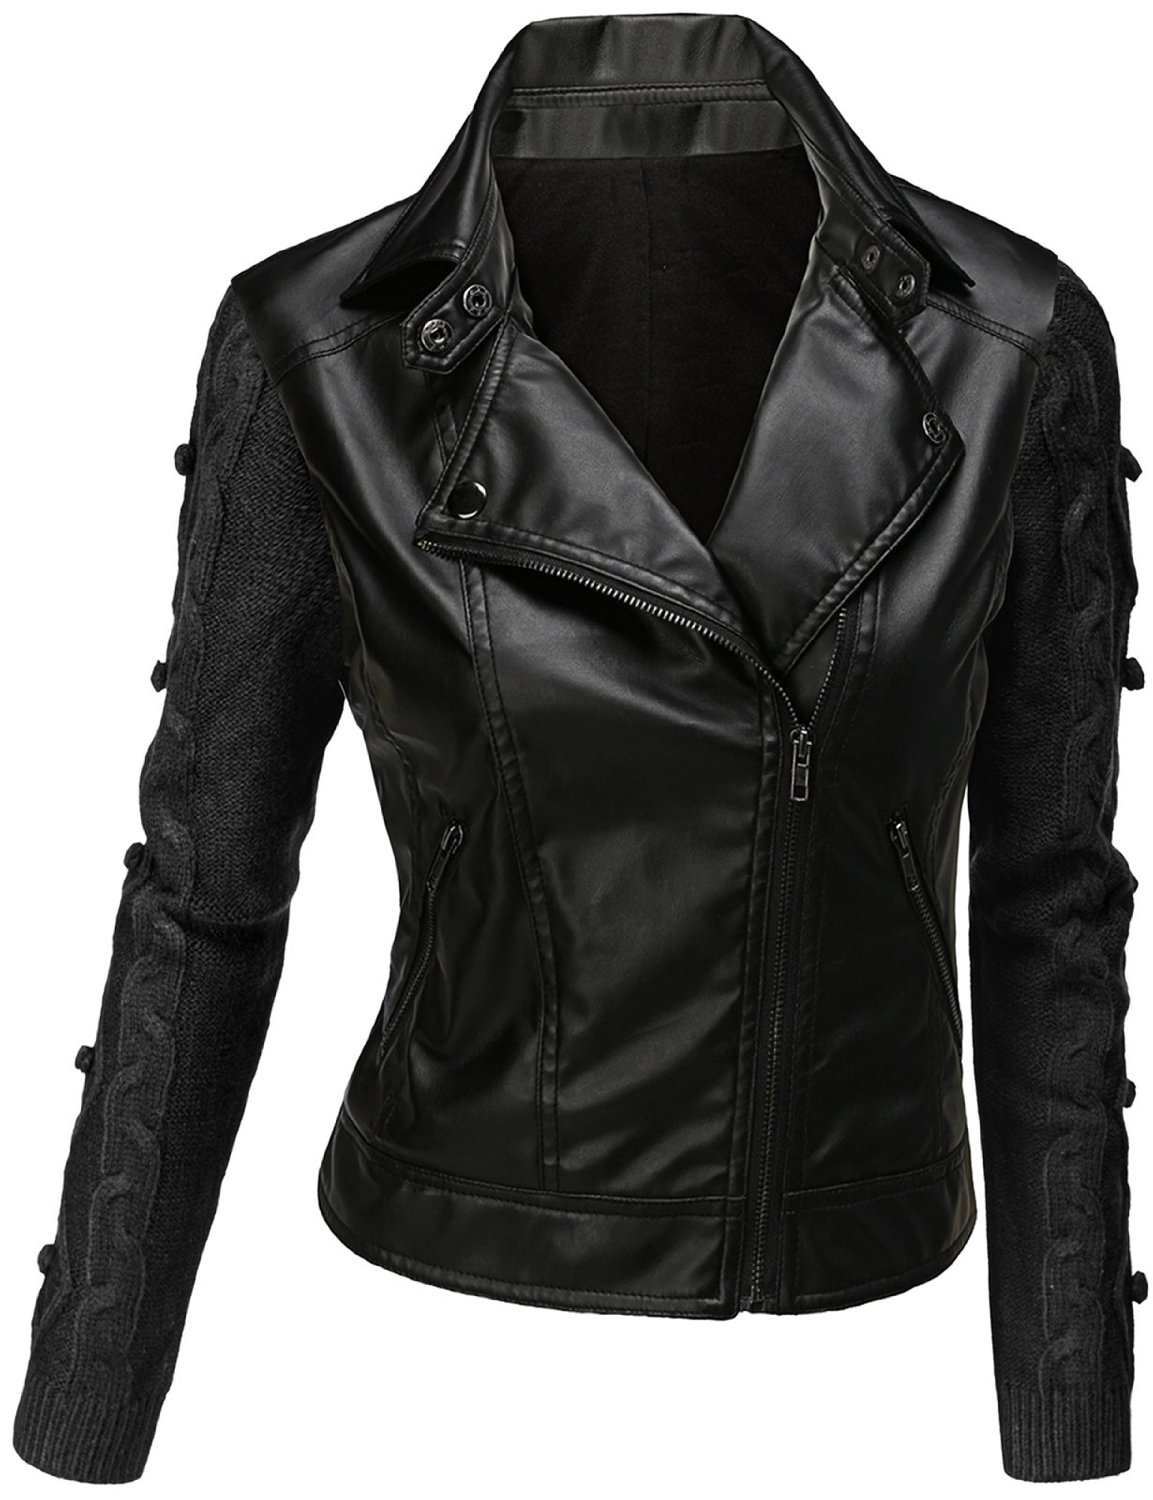 black jackets for women find this pin and more on photography tips. black leather jackets for women. YQNDWTL